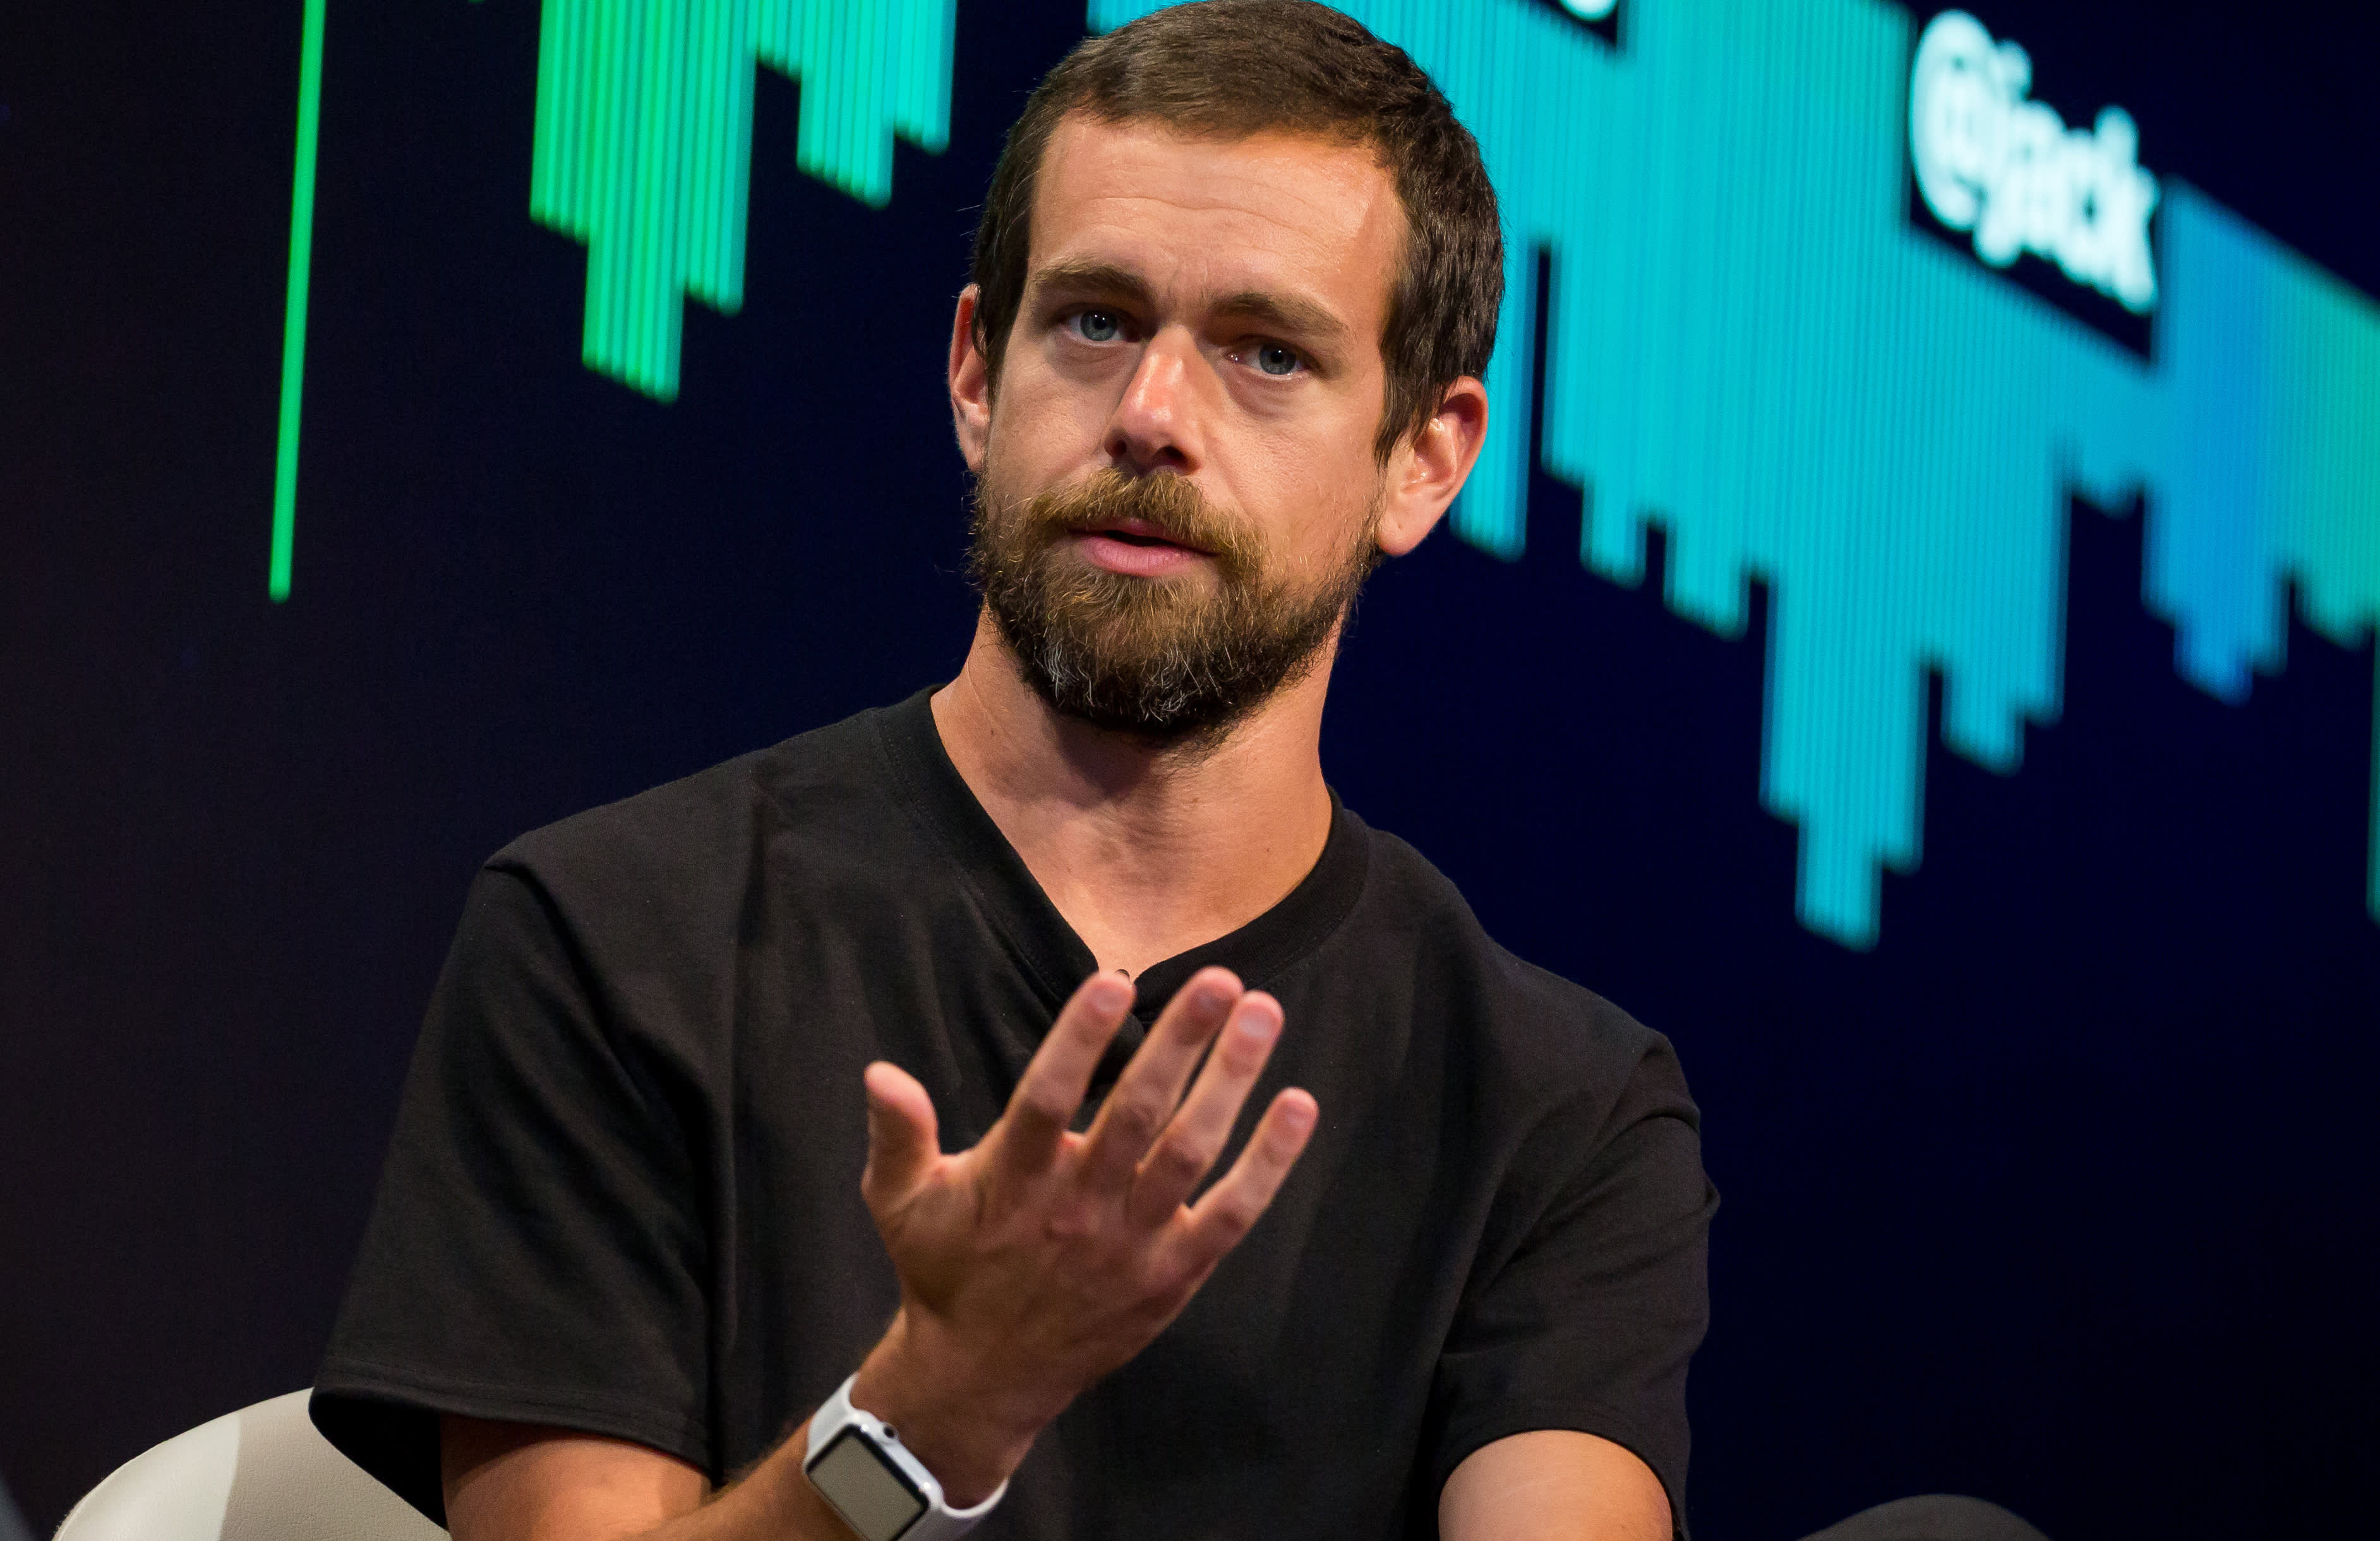 Square falls 7% after forecasting lower-than-expected guidance